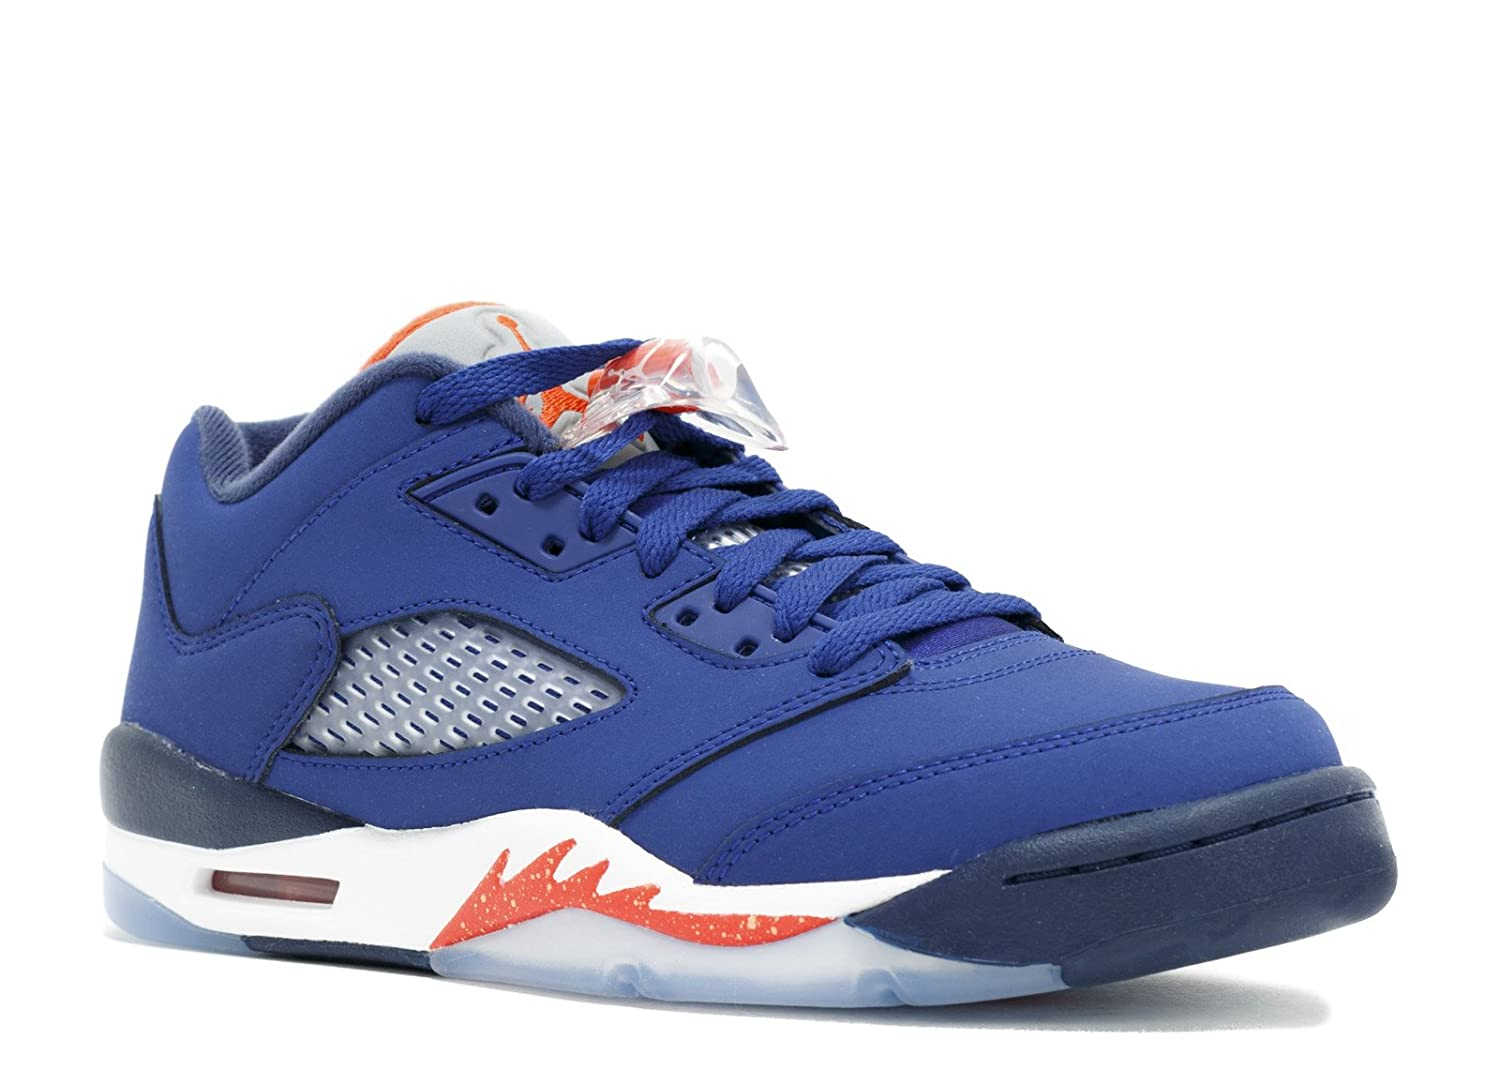 super popular d5bee 83697 Nike Air Jordan 5 Retro Low GS Kids Basketball Shoes, Deep Royal Blue    Team Orange - Midnight Navy - W, 4.5Y M US